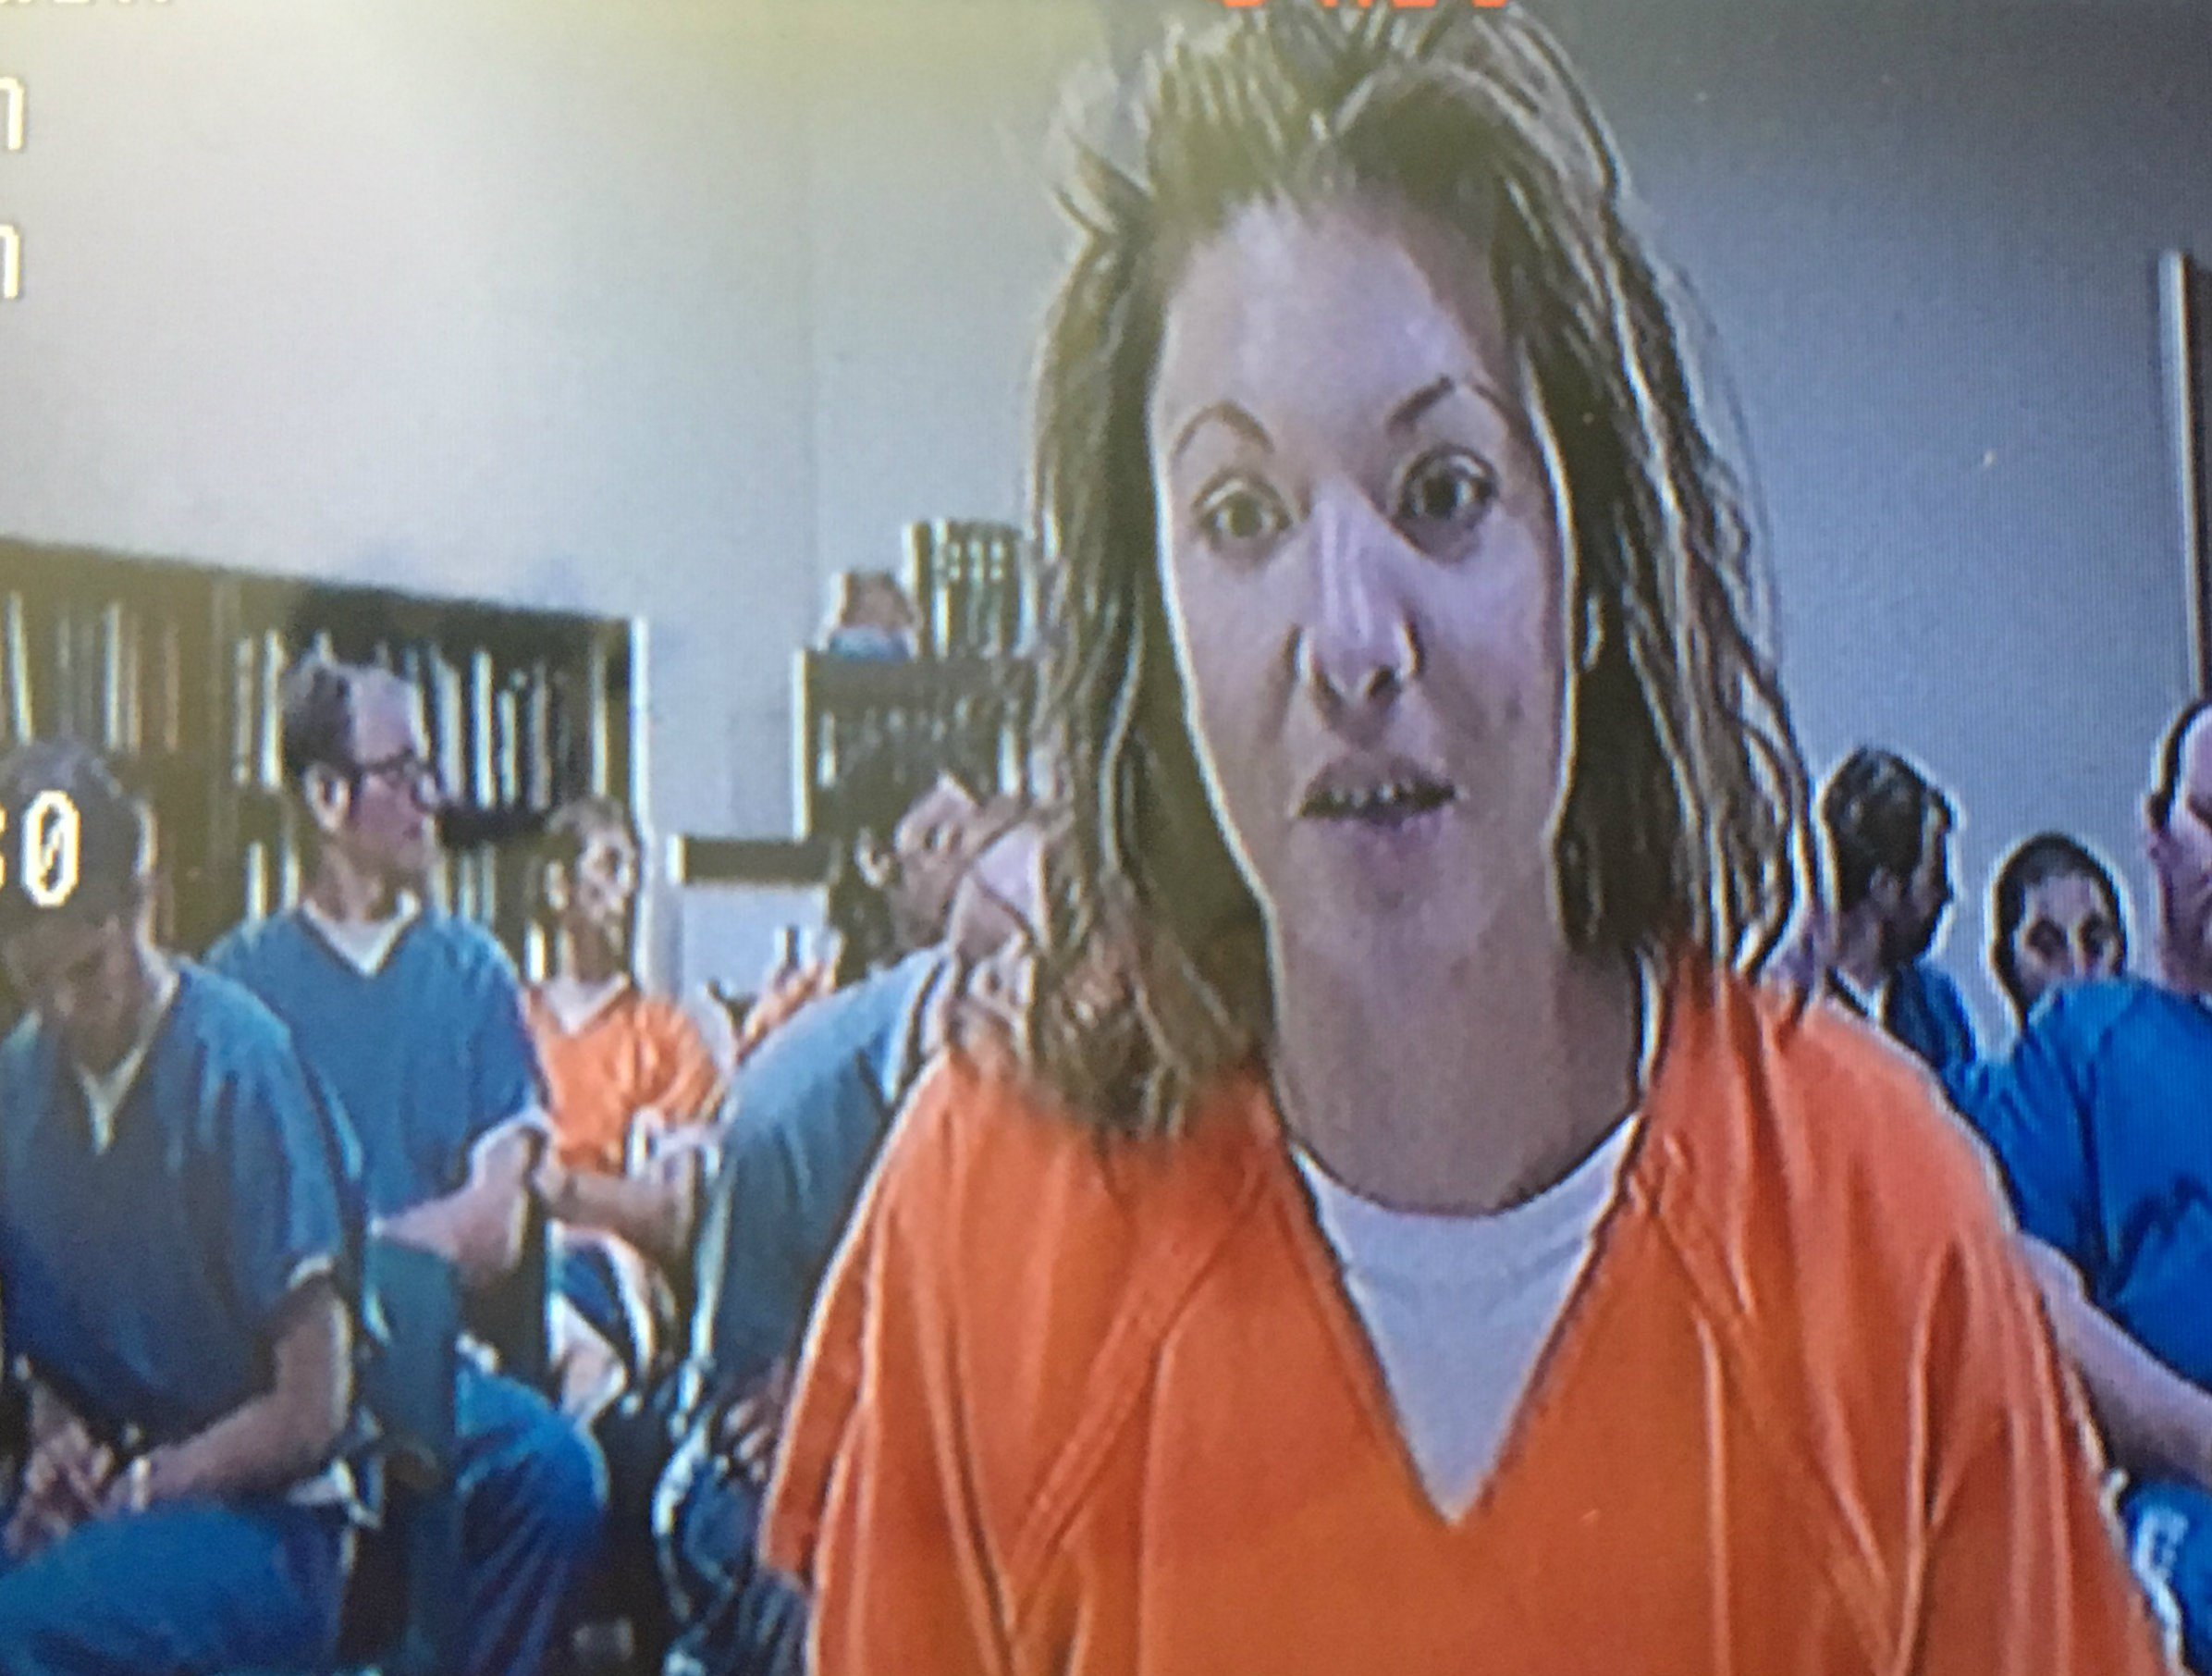 Amber M. Coleman appears in Gallatin County Justice Court on Nov. 13, 2017 (MTN News photo)